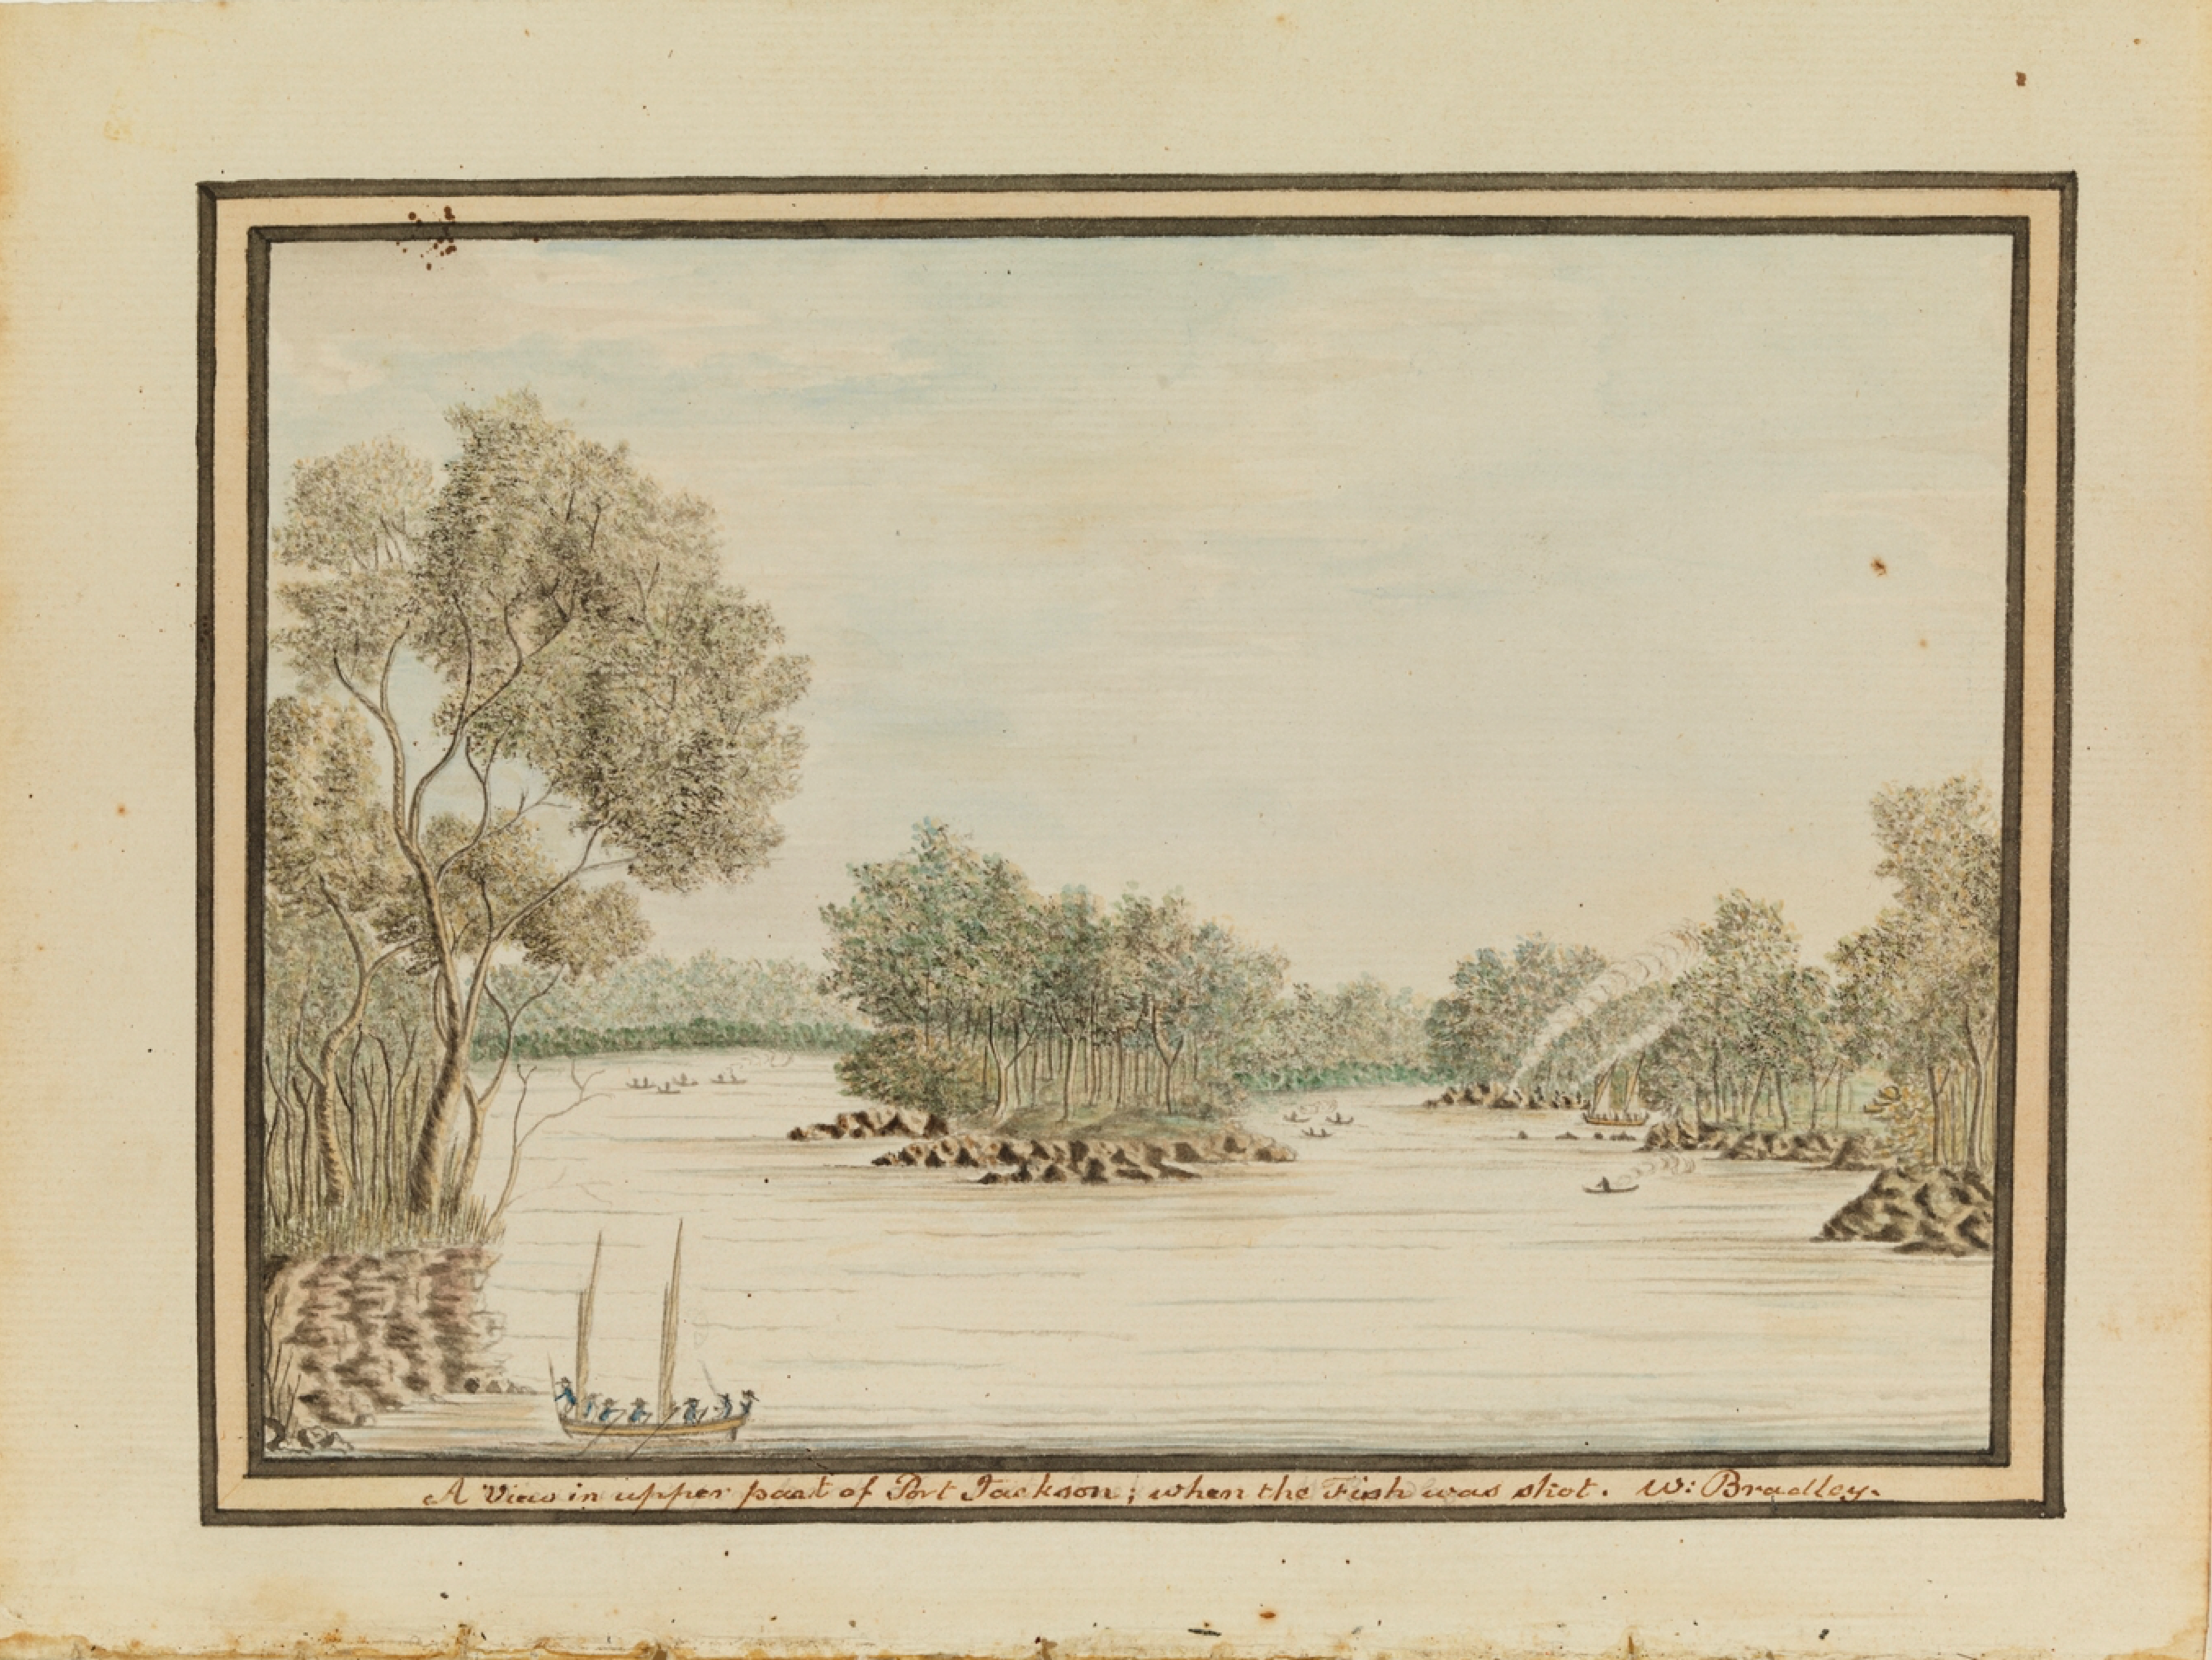 William Bradley, A View in Upper Part of Port Jackson, A Voyage to New South Wales, Journal, Sydney